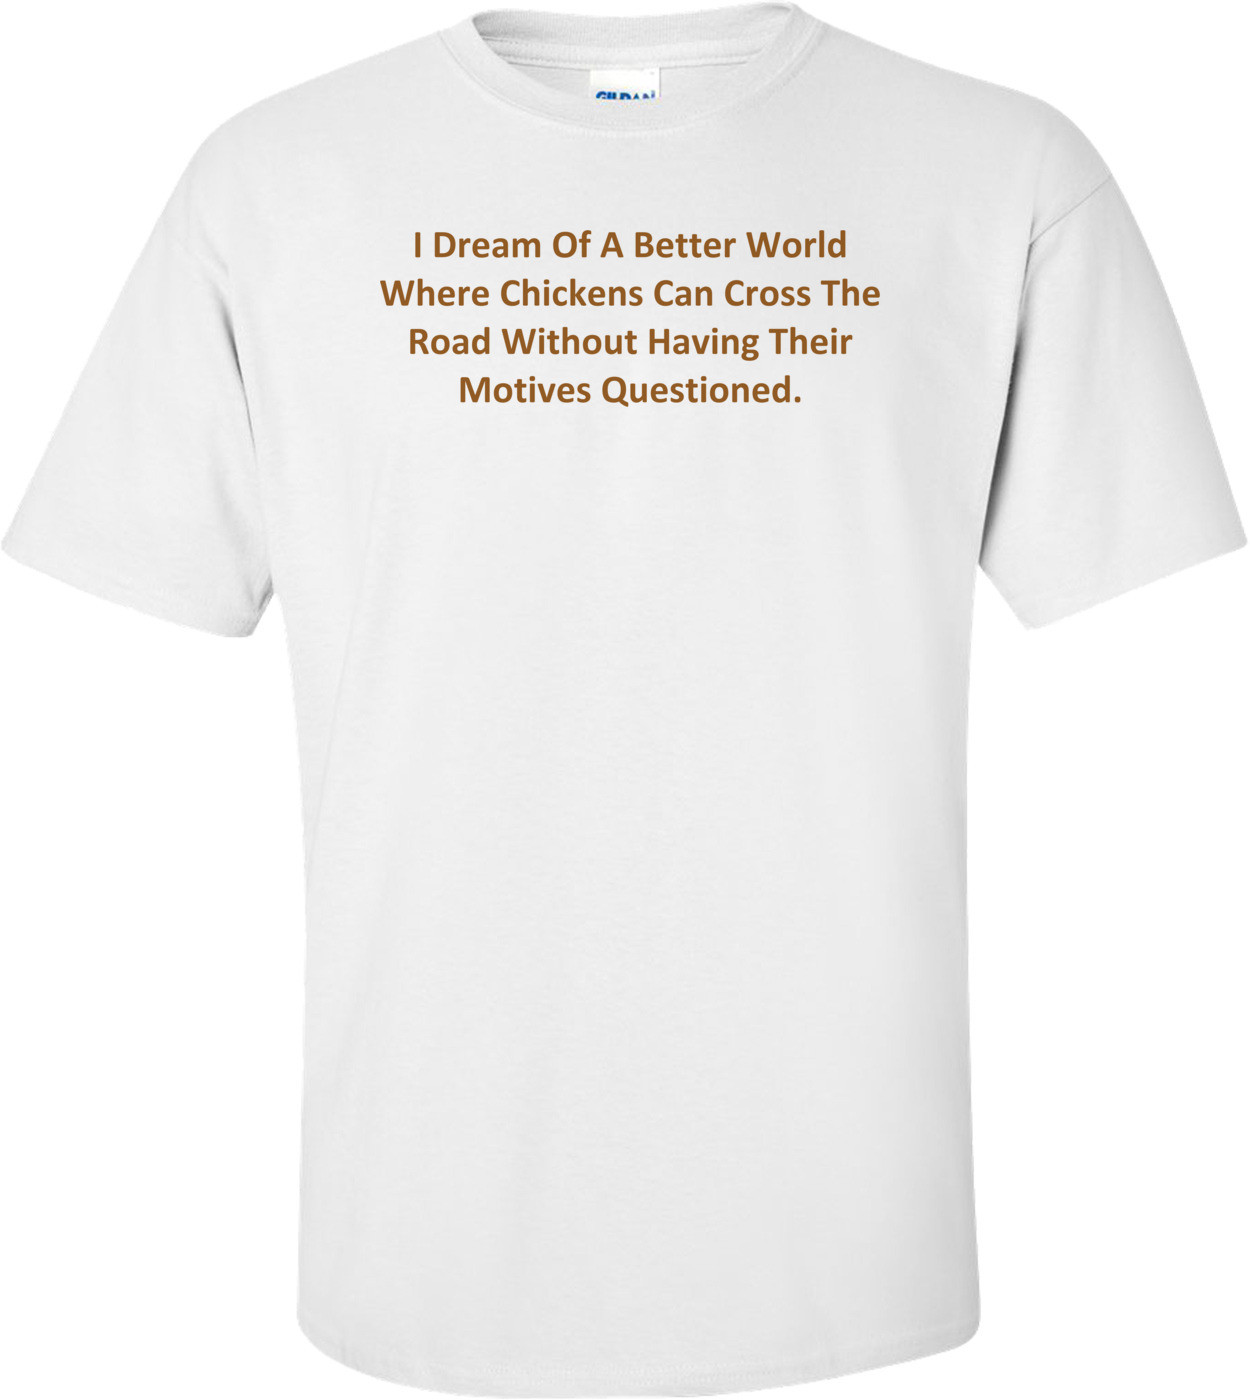 I Dream Of A Better World Where Chickens Can Cross The Road Without Having Their Motives Questioned. Shirt